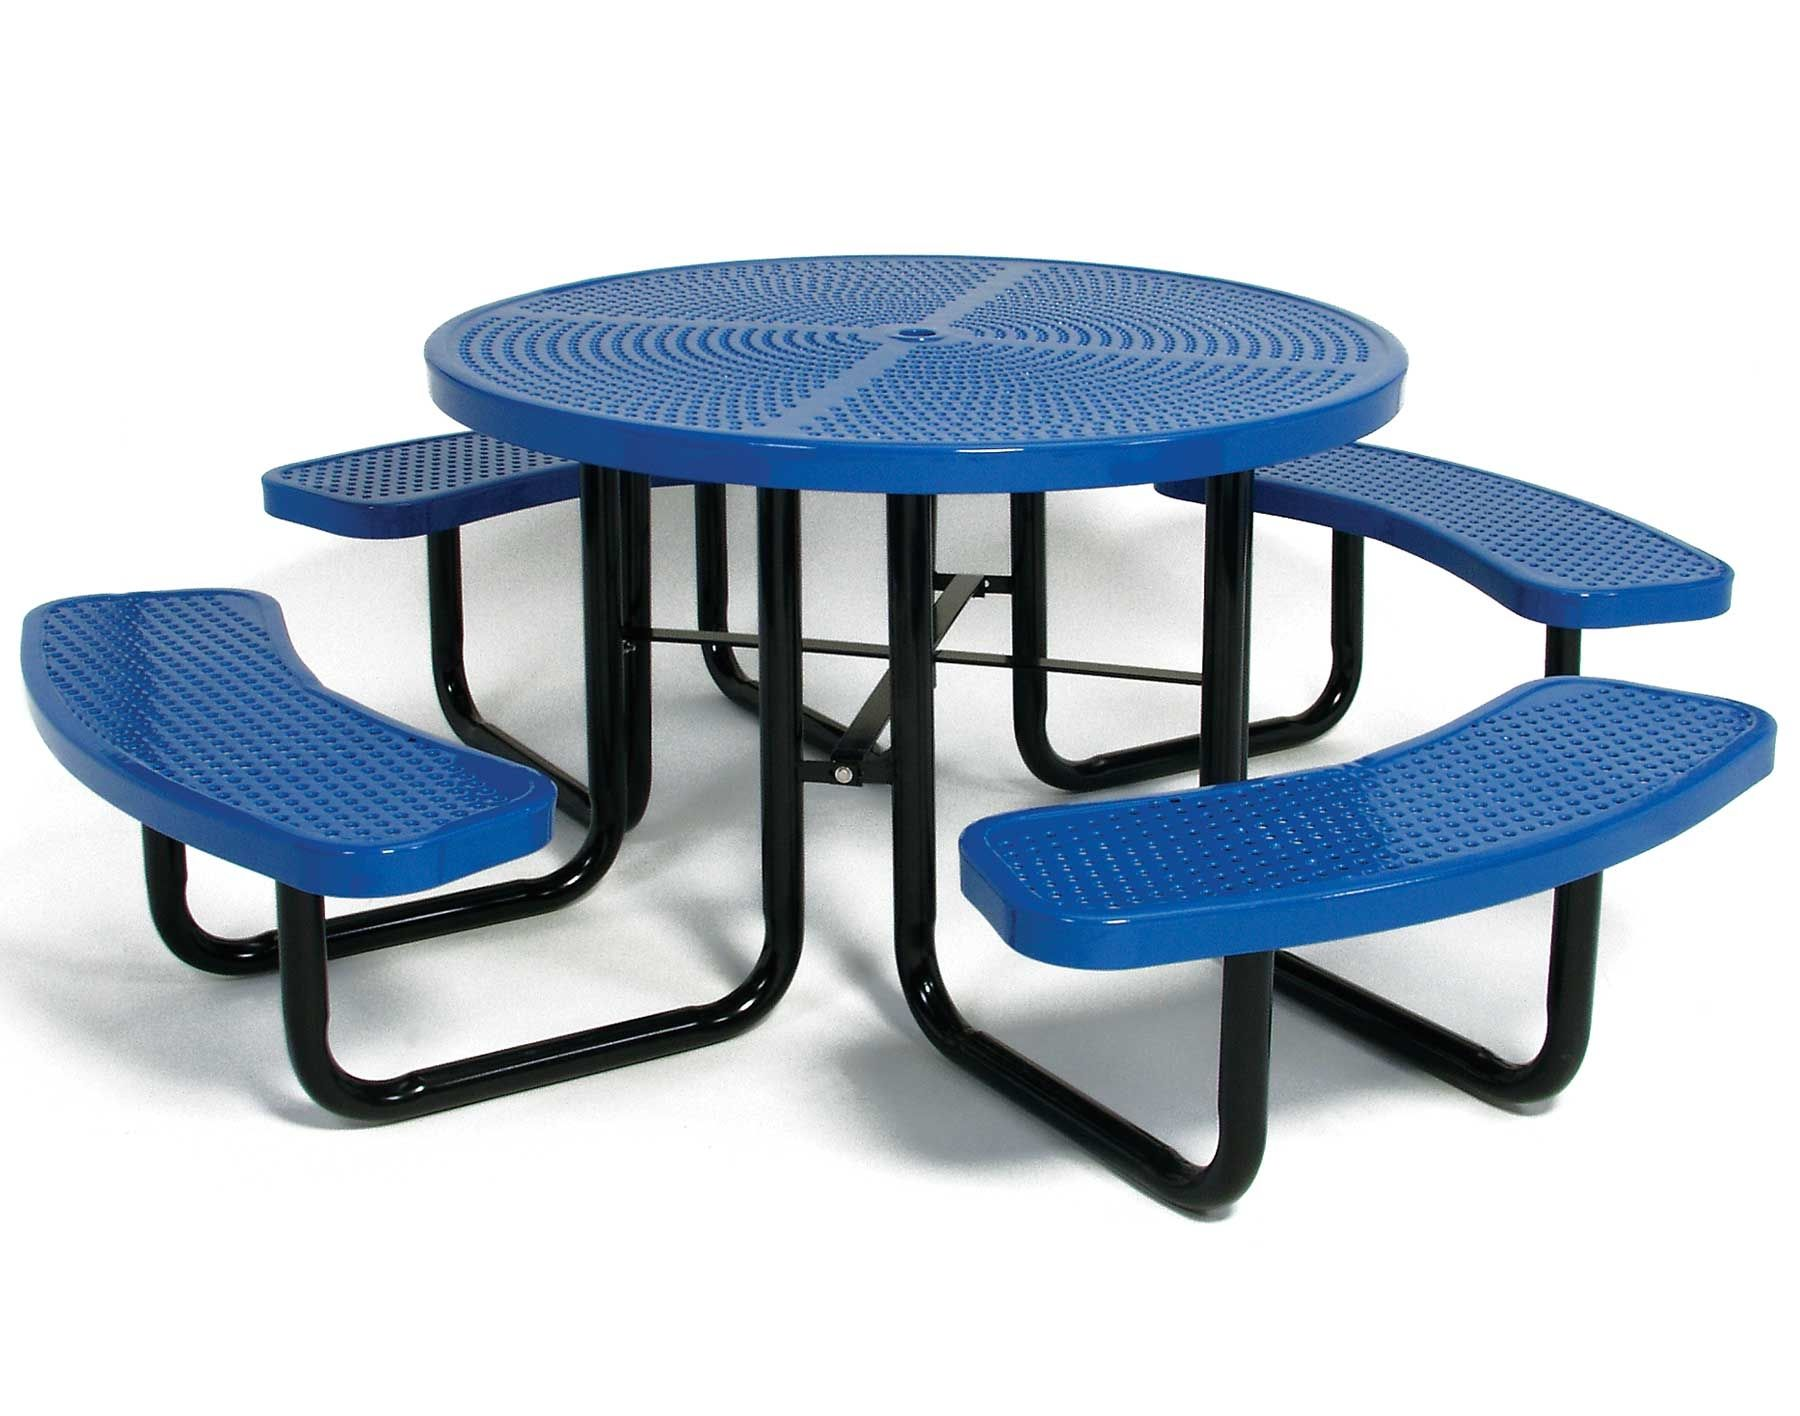 Round perforated metal picnic table